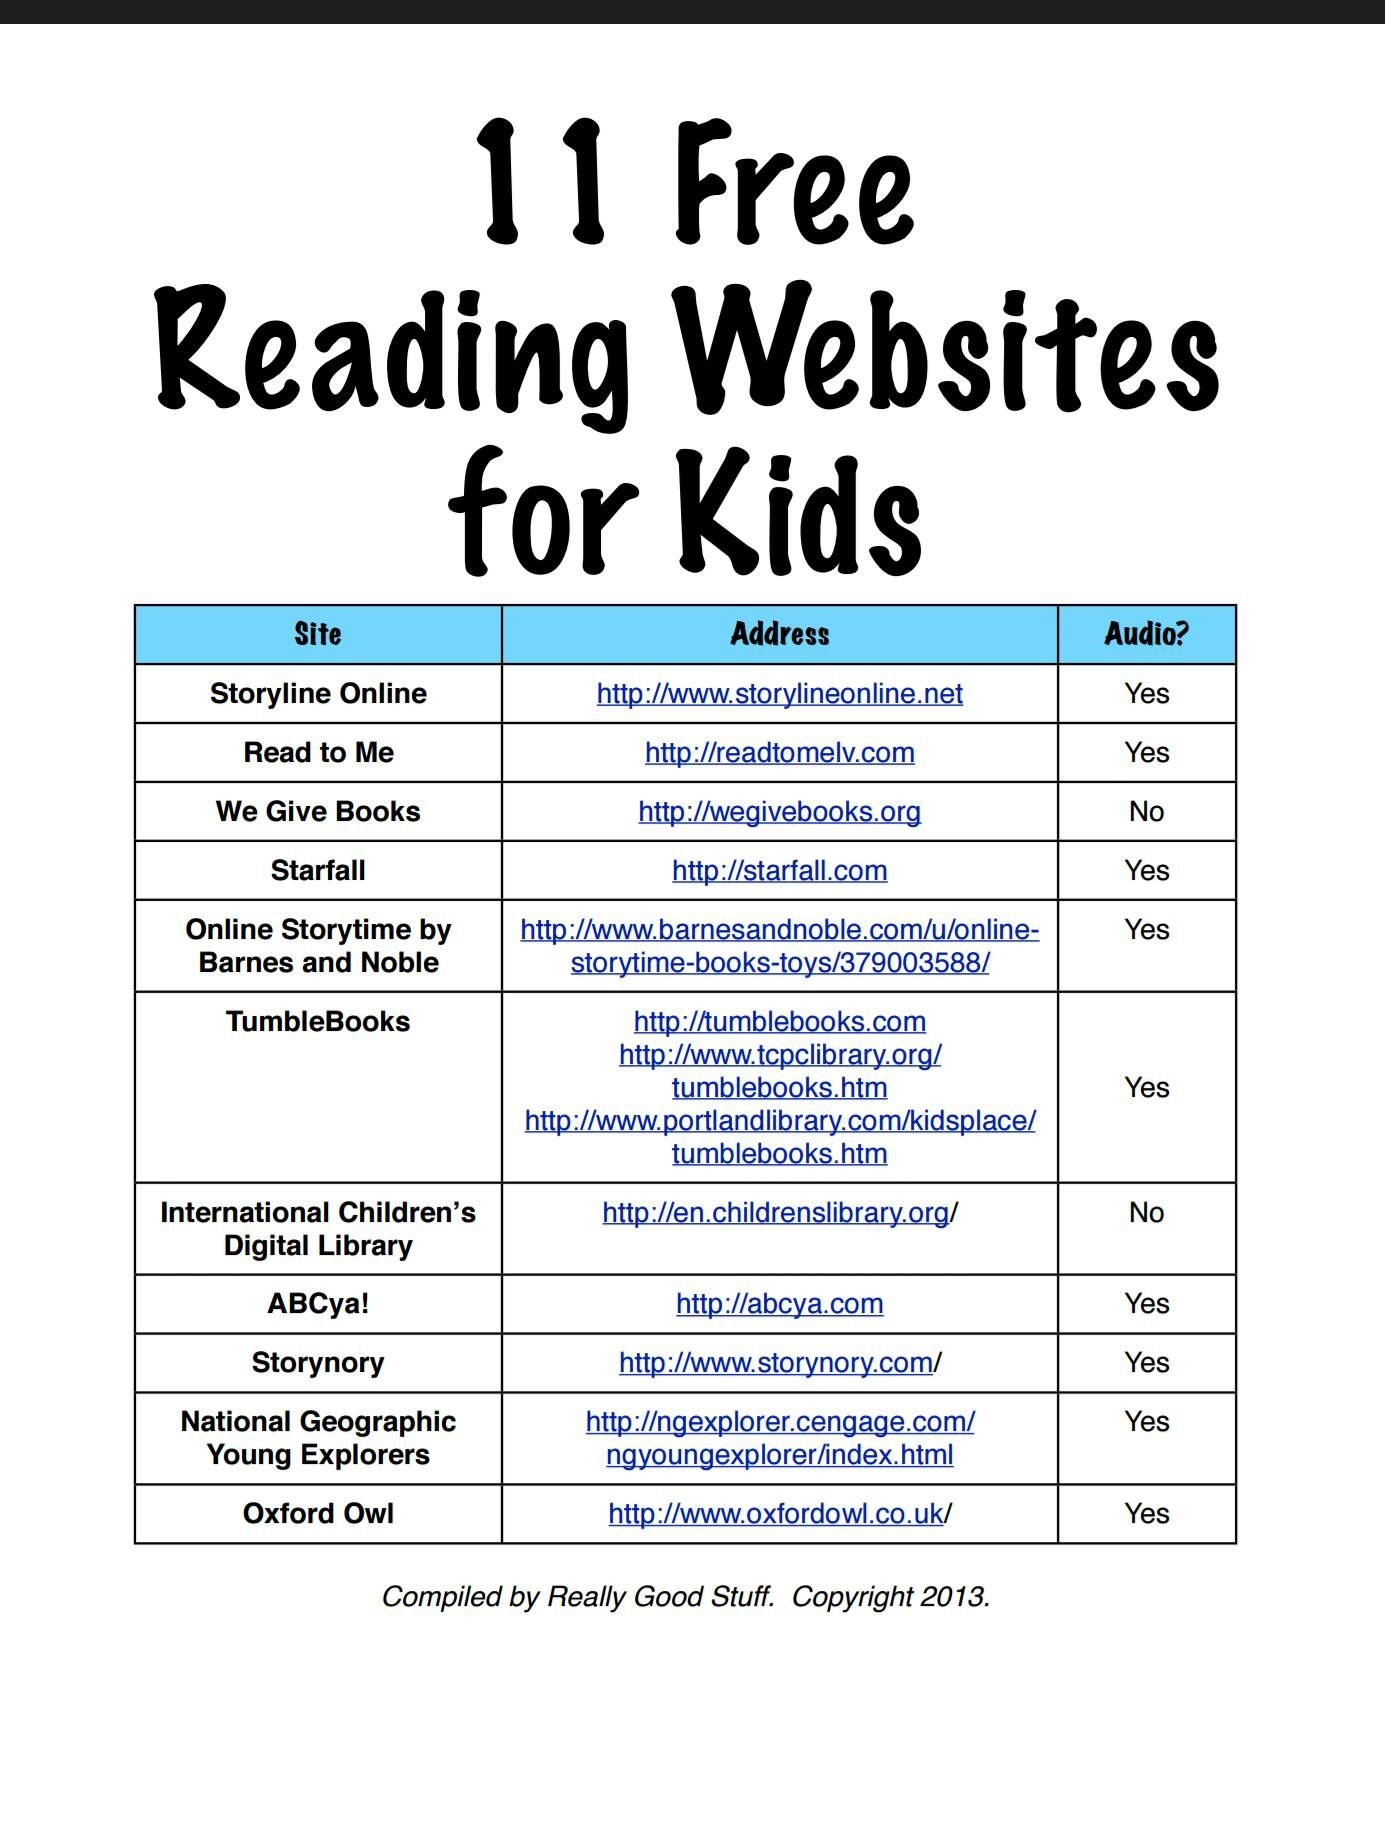 Pin By Christy Clow On 5th Grade Digital Learning Classroom Reading Websites For Kids Learning Websites For Kids What are some good reading websites